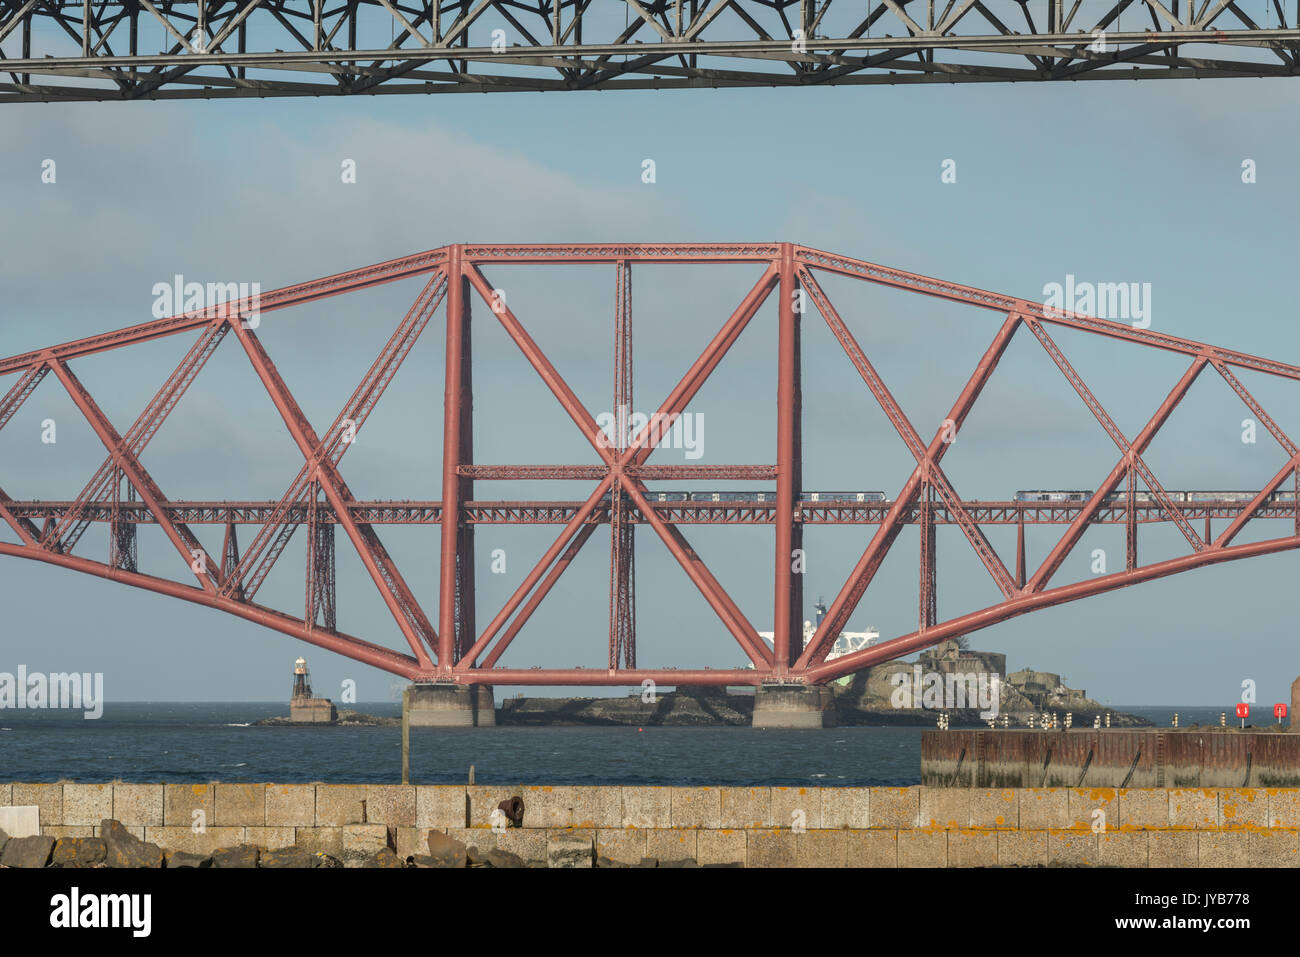 Forth bridge centre cantilever section, Firth of Forth, Scotland, UK - Stock Image